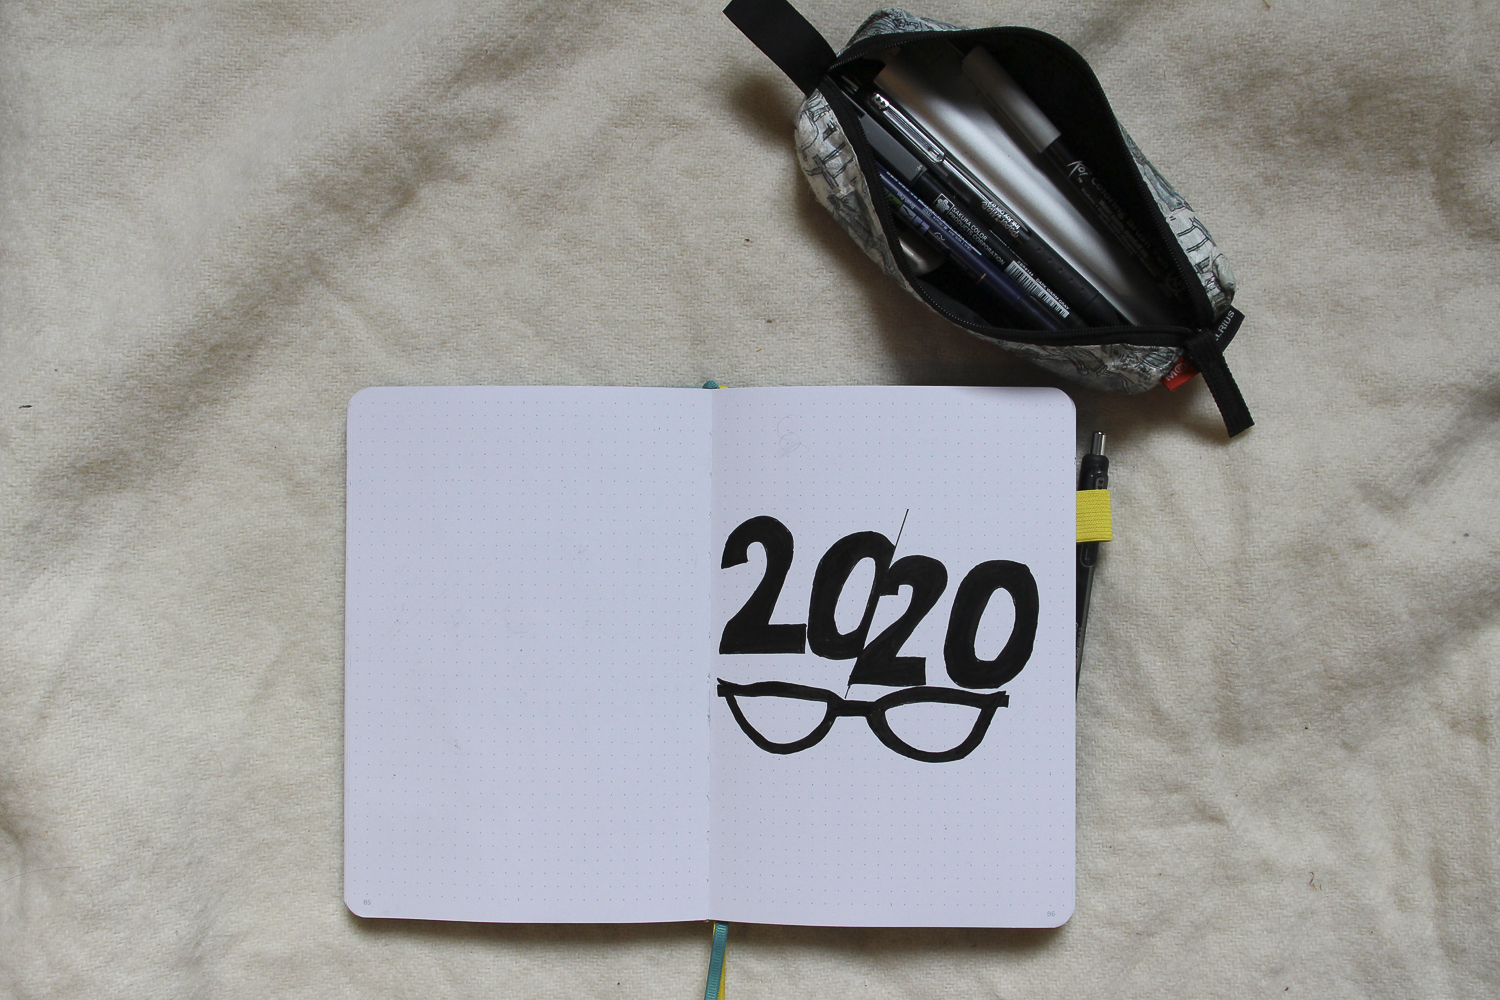 A Quick Look at my 2020 Bullet Journal Set-Up